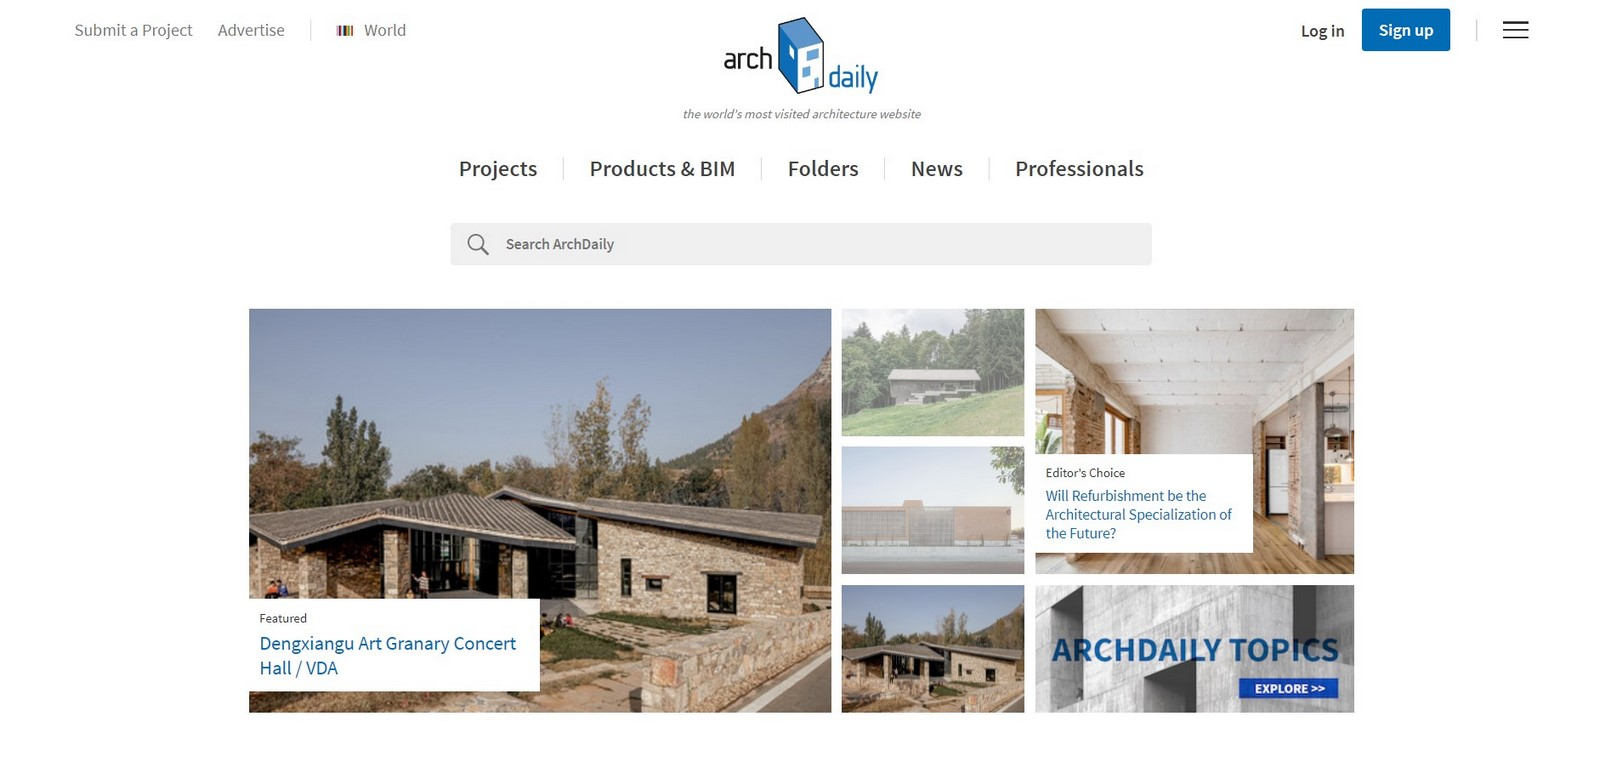 12 Websites That Can Aid Architectural Thesis Research - Sheet6